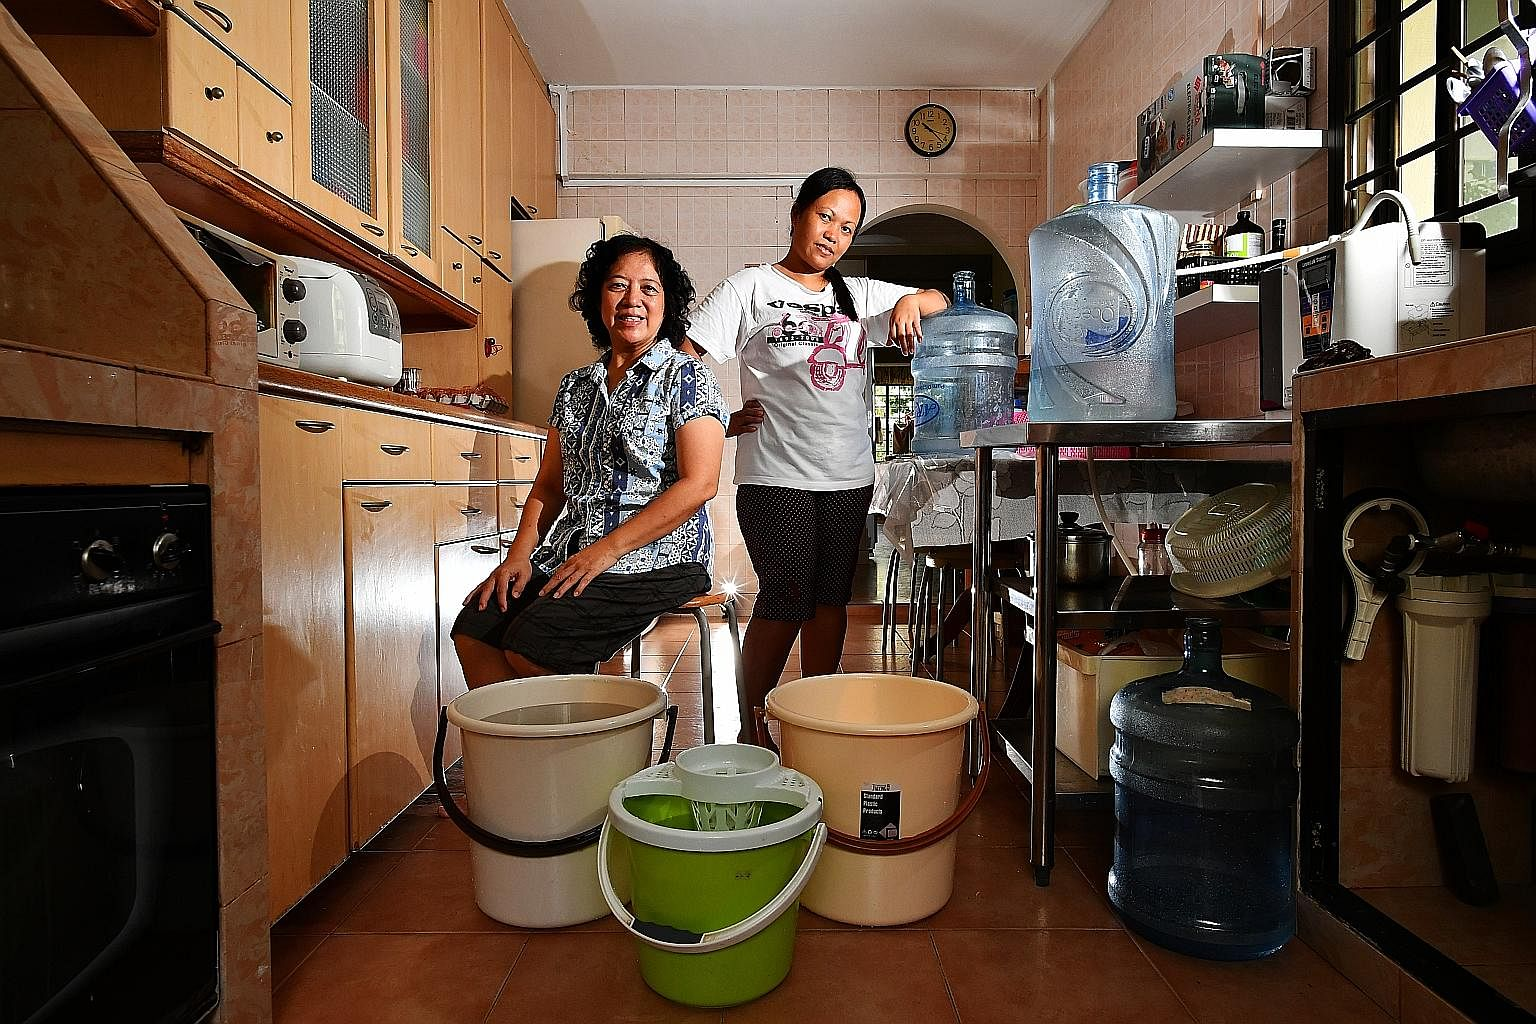 Madam Yeong Soh Yeng, a freelance pre-school teacher, and her Indonesian maid, Madam Fatimah Dulhadi, save water from the washing machine's rinse cycles to wash the floors and flush toilets.